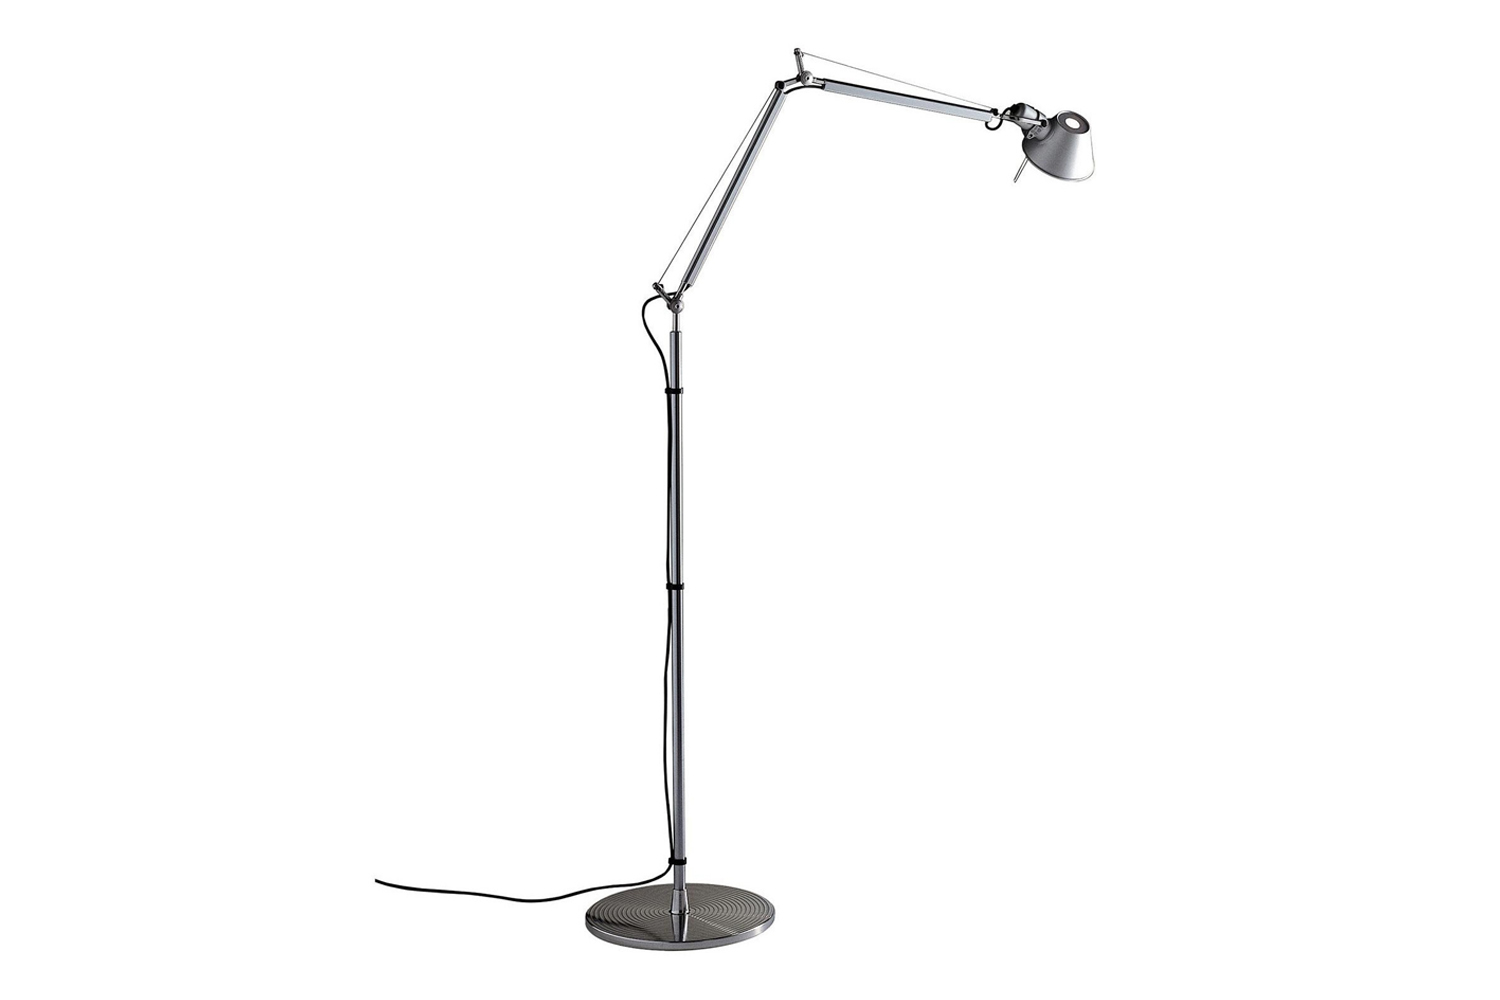 the artemide tolomeo floor lamp is \$585 at hive. 14